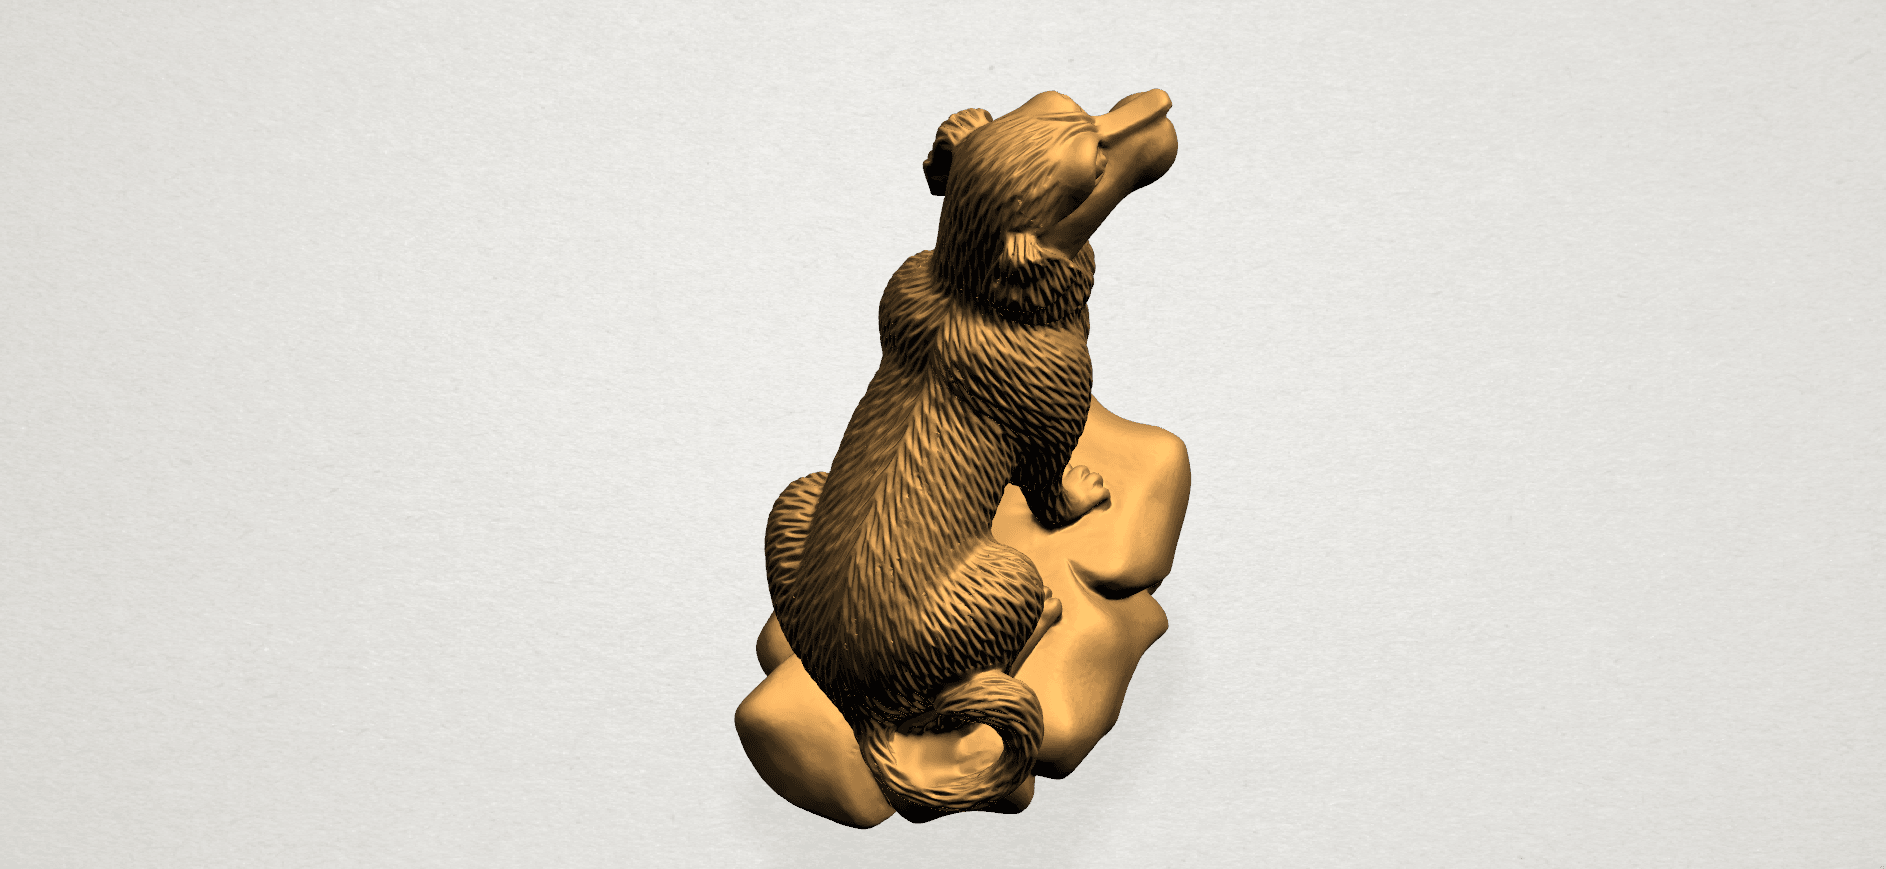 ZChinese Horoscope11-A04.png Download free STL file Chinese Horoscope 11 Dog • 3D print design, GeorgesNikkei